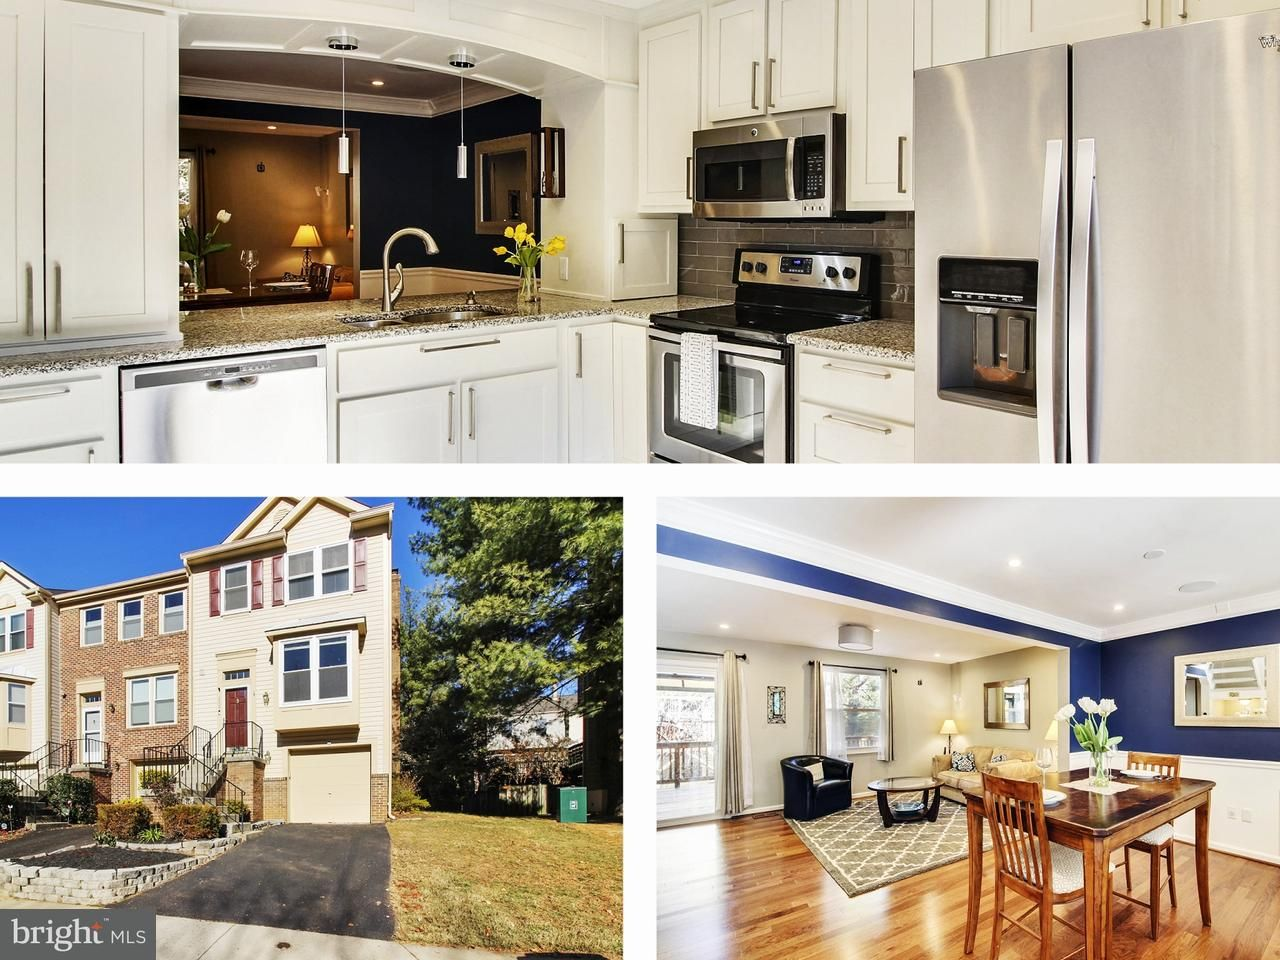 202 Leafcup Ct, Gaithersburg, MD 20878 - Recently Sold | Trulia